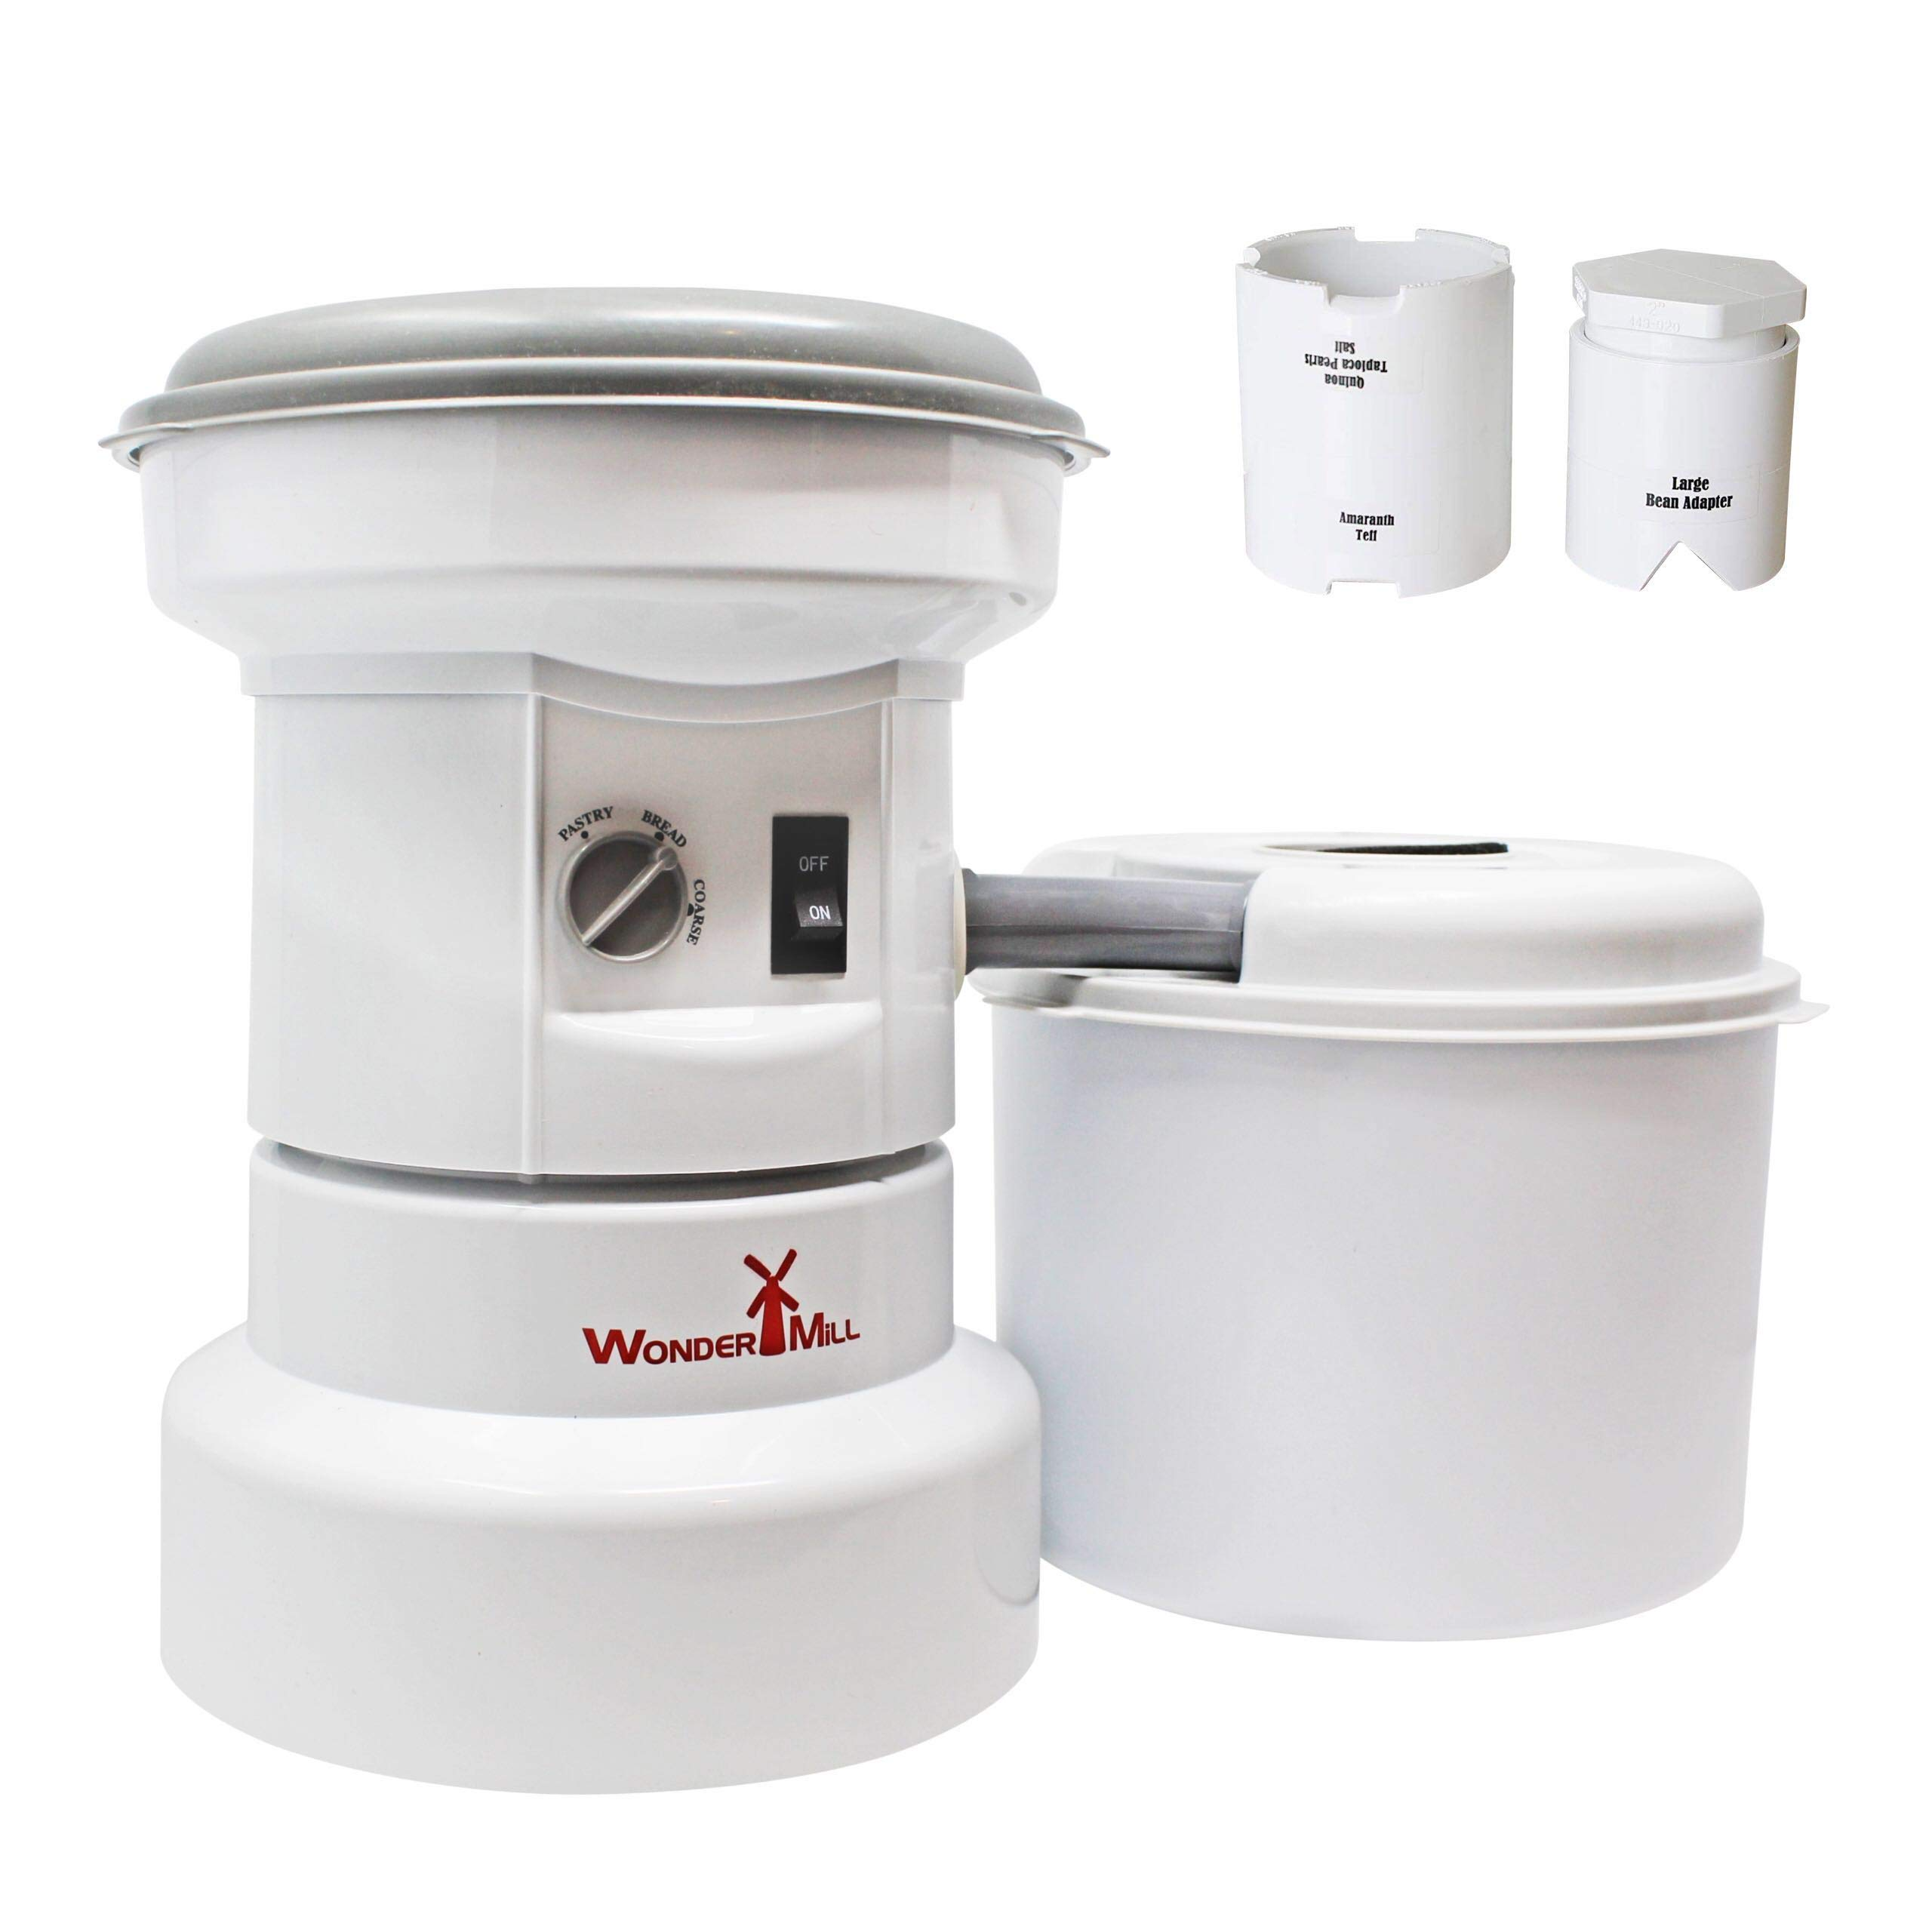 WONDERMILL - Grain Mill Grinder with Flour Canister - Electric Burr Grinder for Dry Seeds and Grains with Garbanzo Beans & Small Grain Attachments Combo - Electric Grinder for Spice Seeds, 1250W Motor